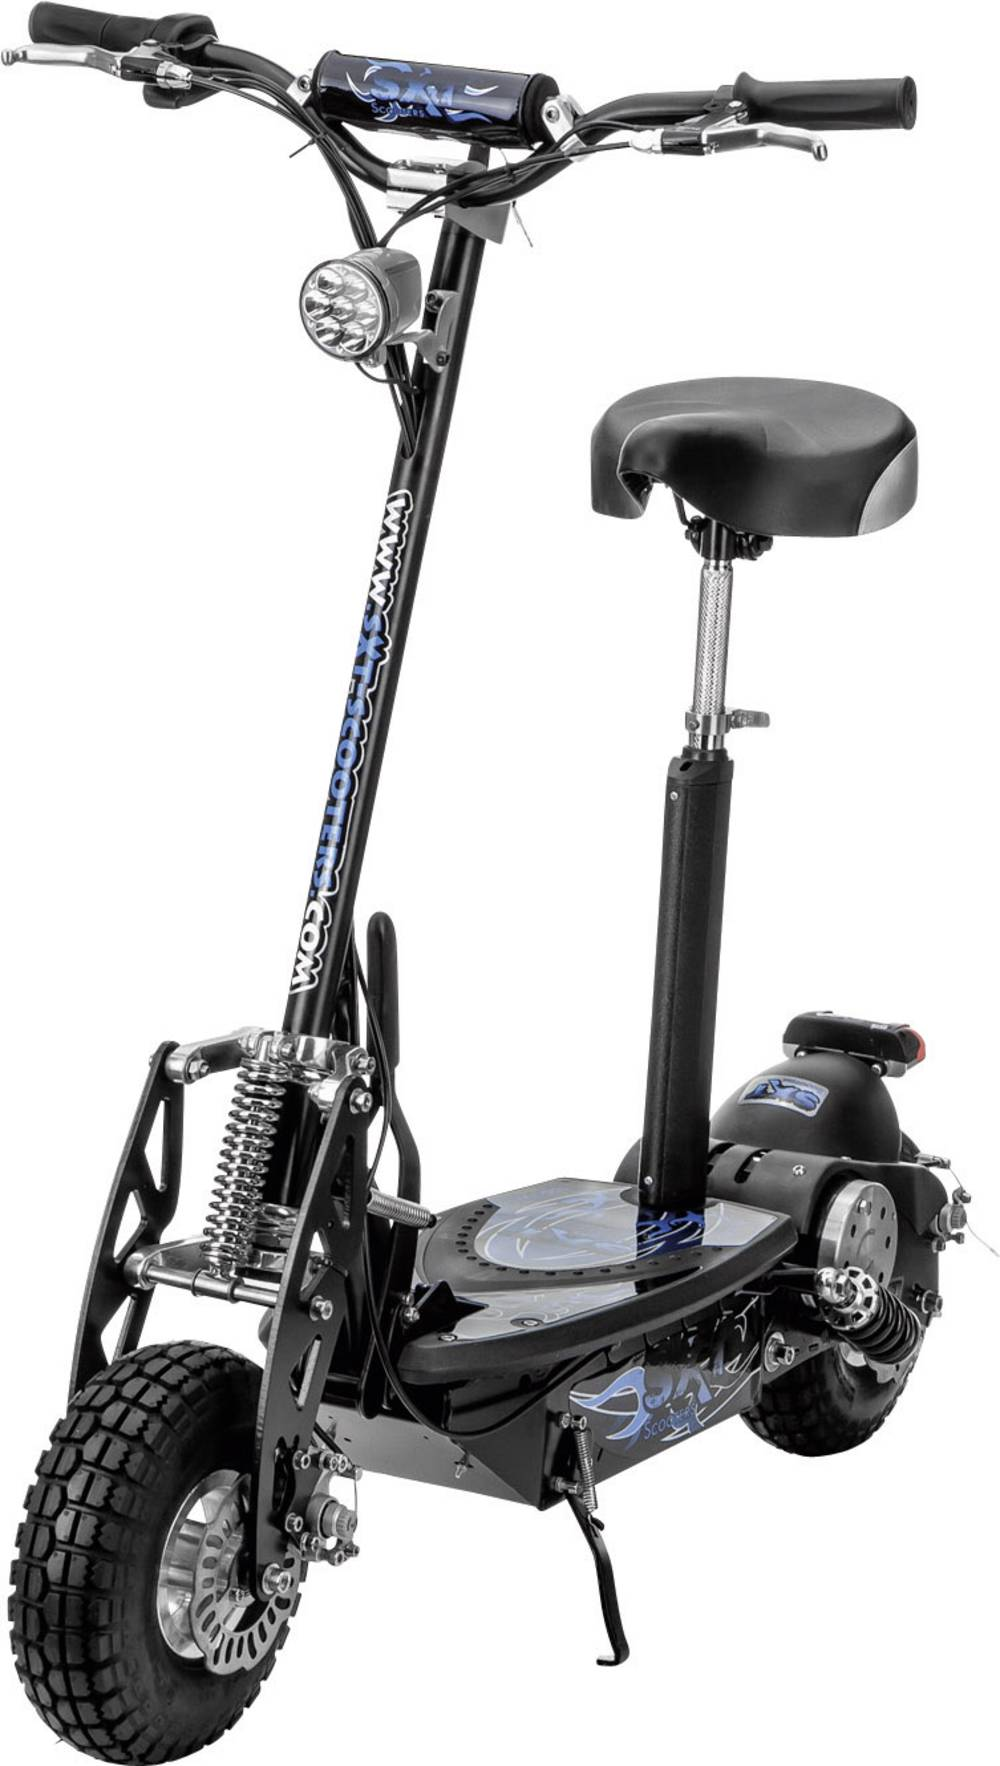 sxt scooters e scooter esc1000 1 turbo schwarz blei 36 v. Black Bedroom Furniture Sets. Home Design Ideas